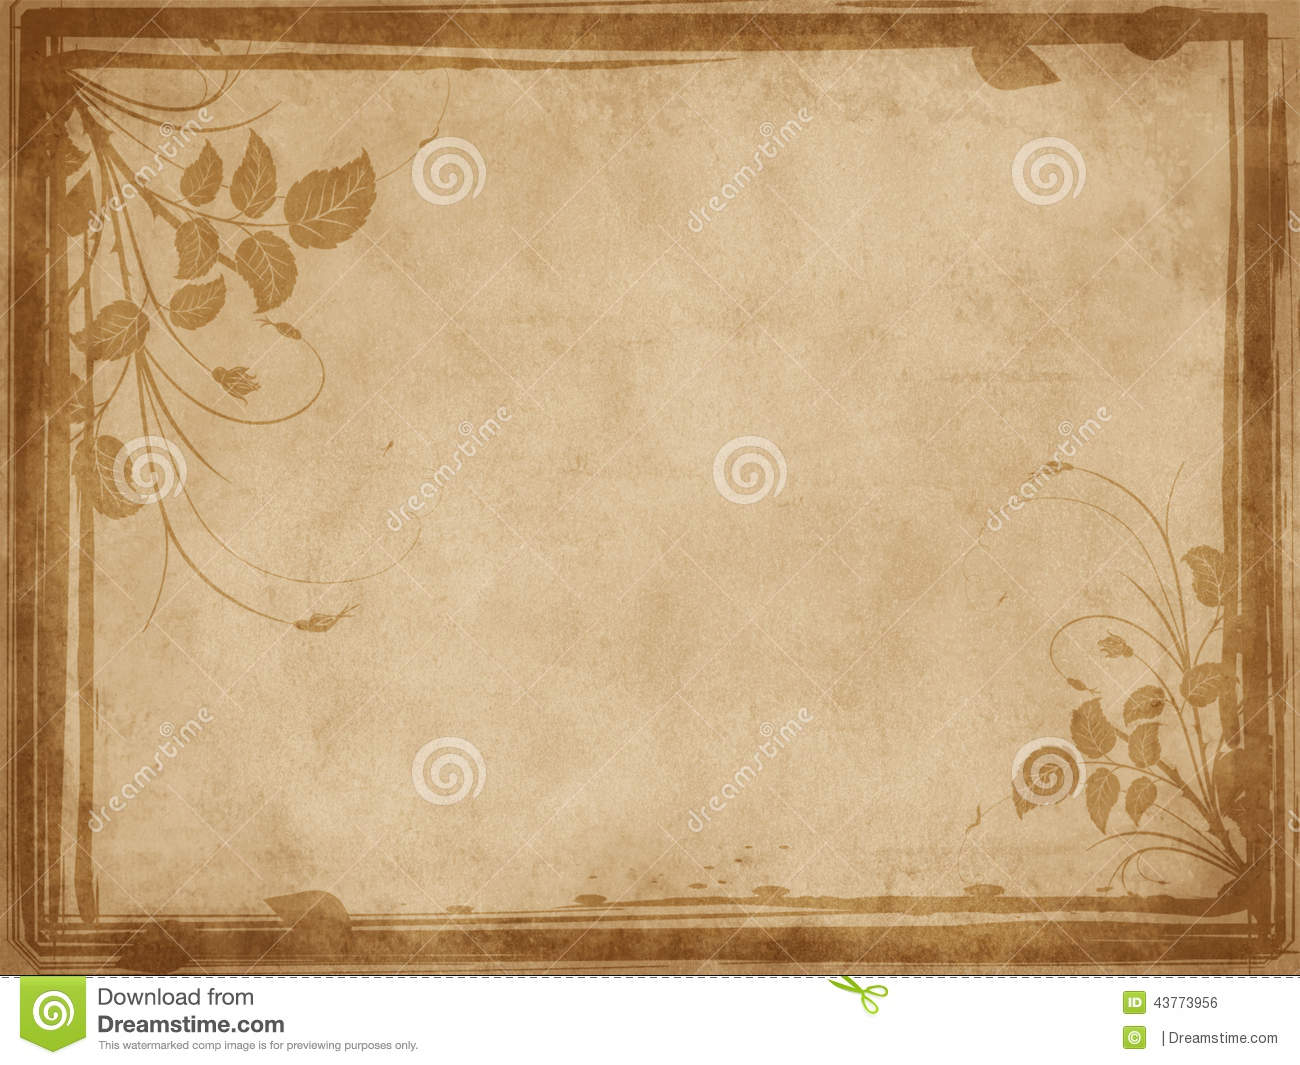 Source Thumbsdreamstime Report Vintage Paper With Border